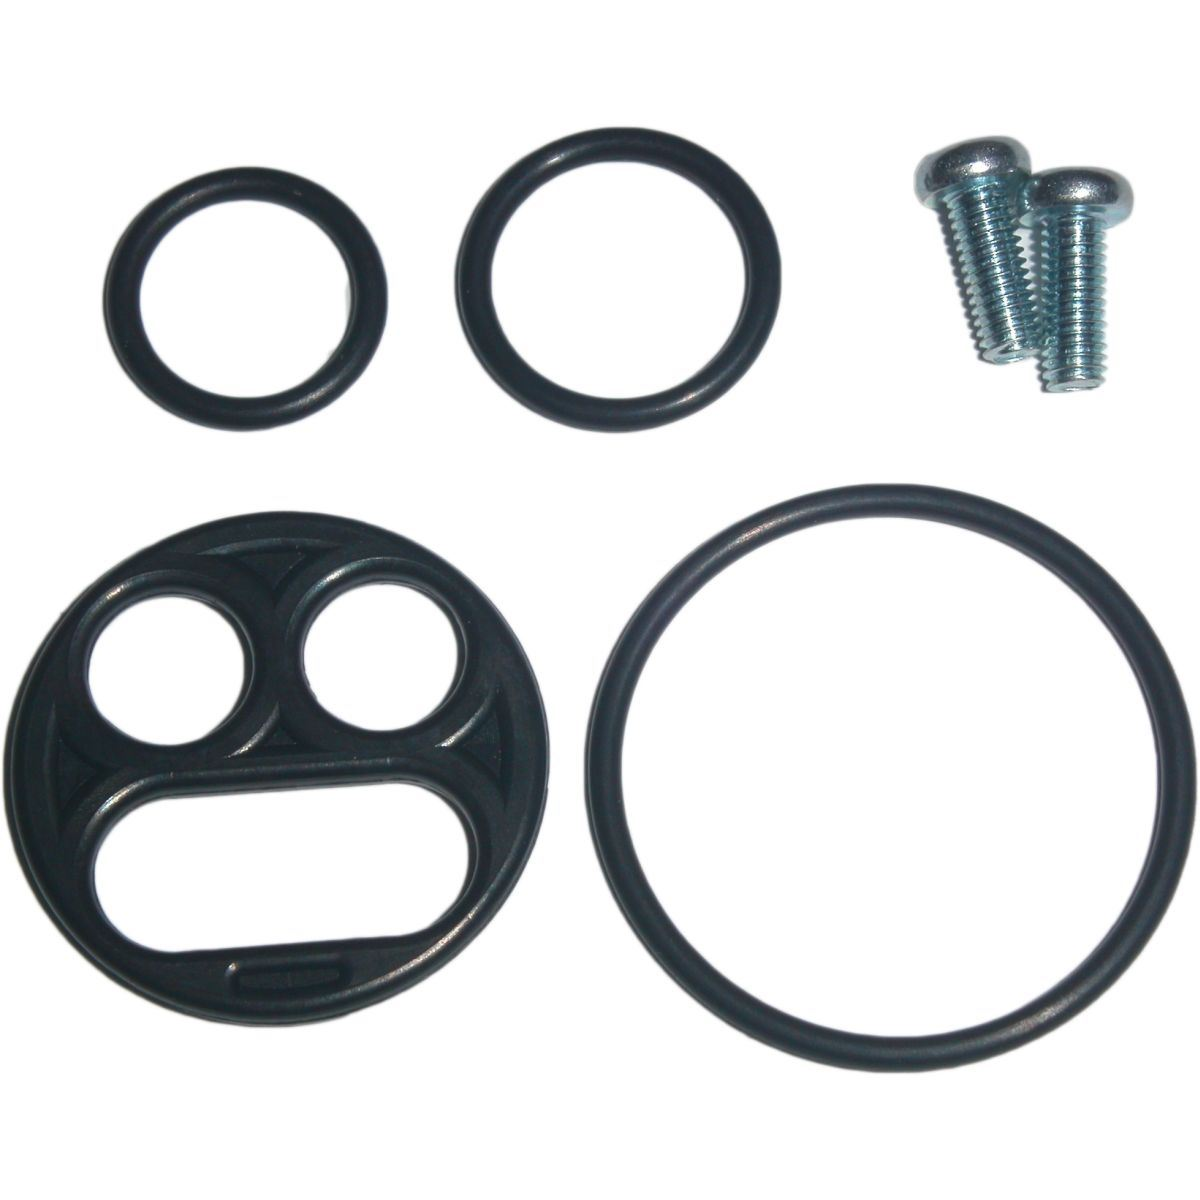 Petrol Tap Repair Kit for 1996 Kawasaki ZX-6R ZX600F2